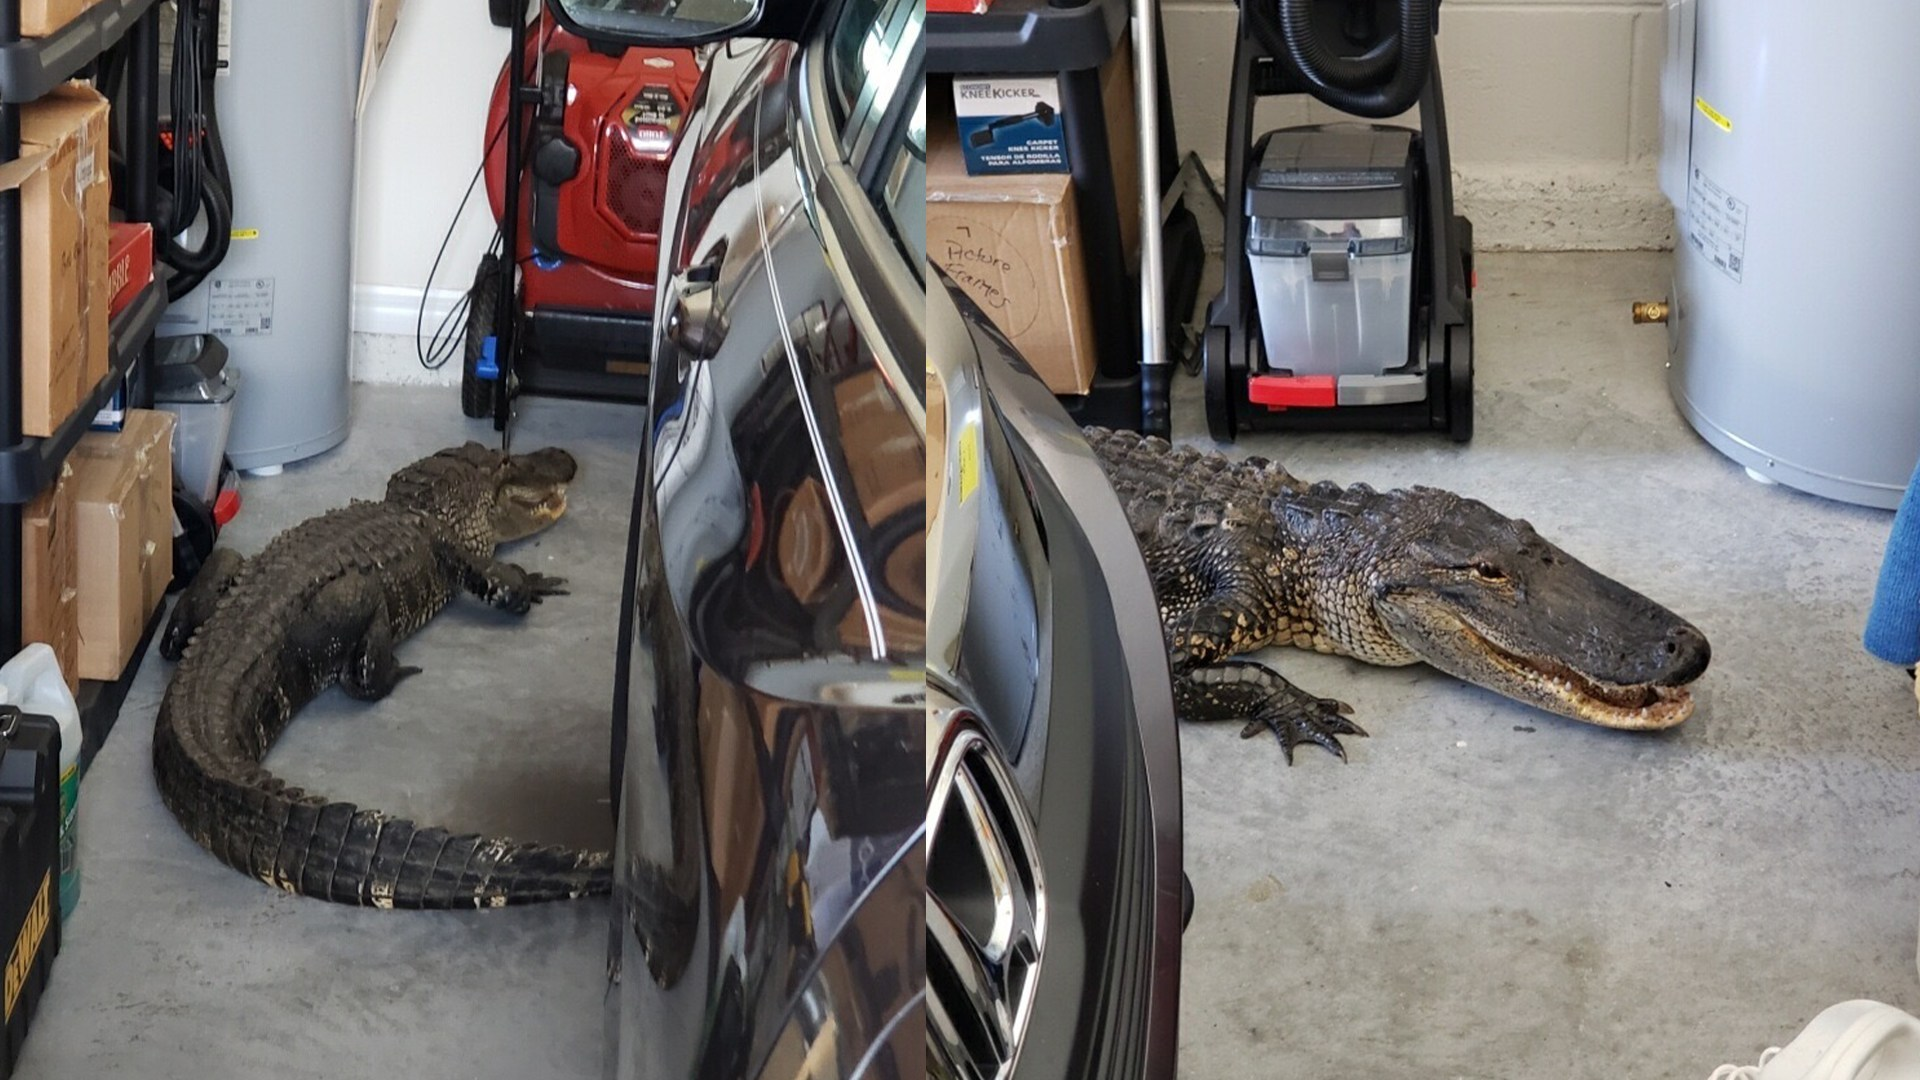 7-foot alligator sneaks into Florida home